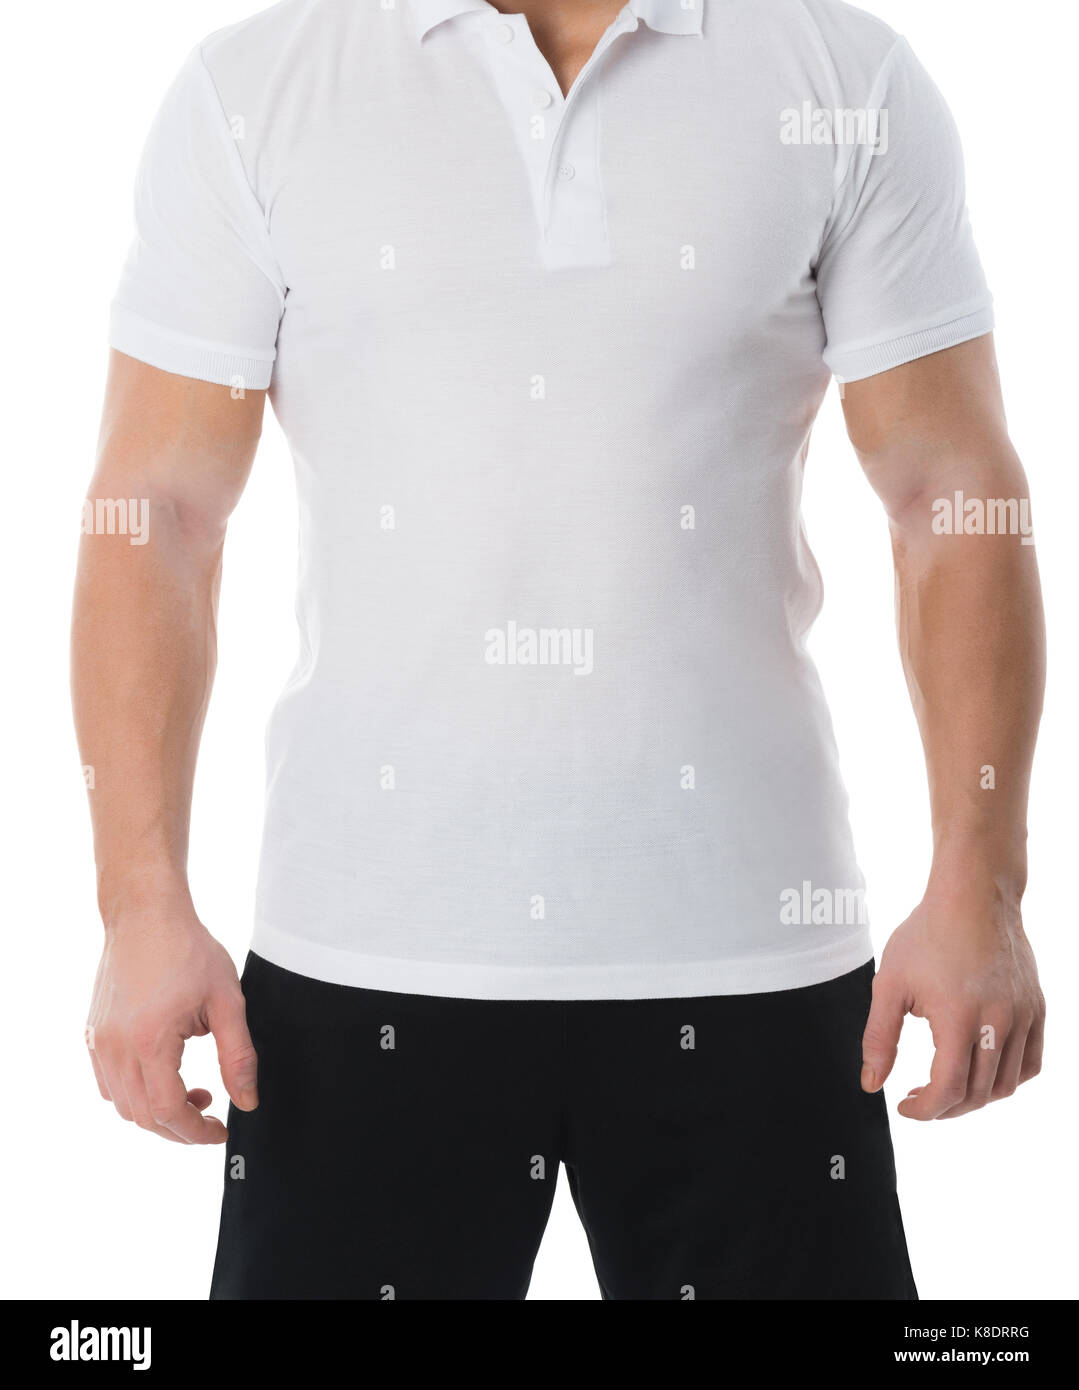 Midsection of man in casuals standing against white background - Stock Image